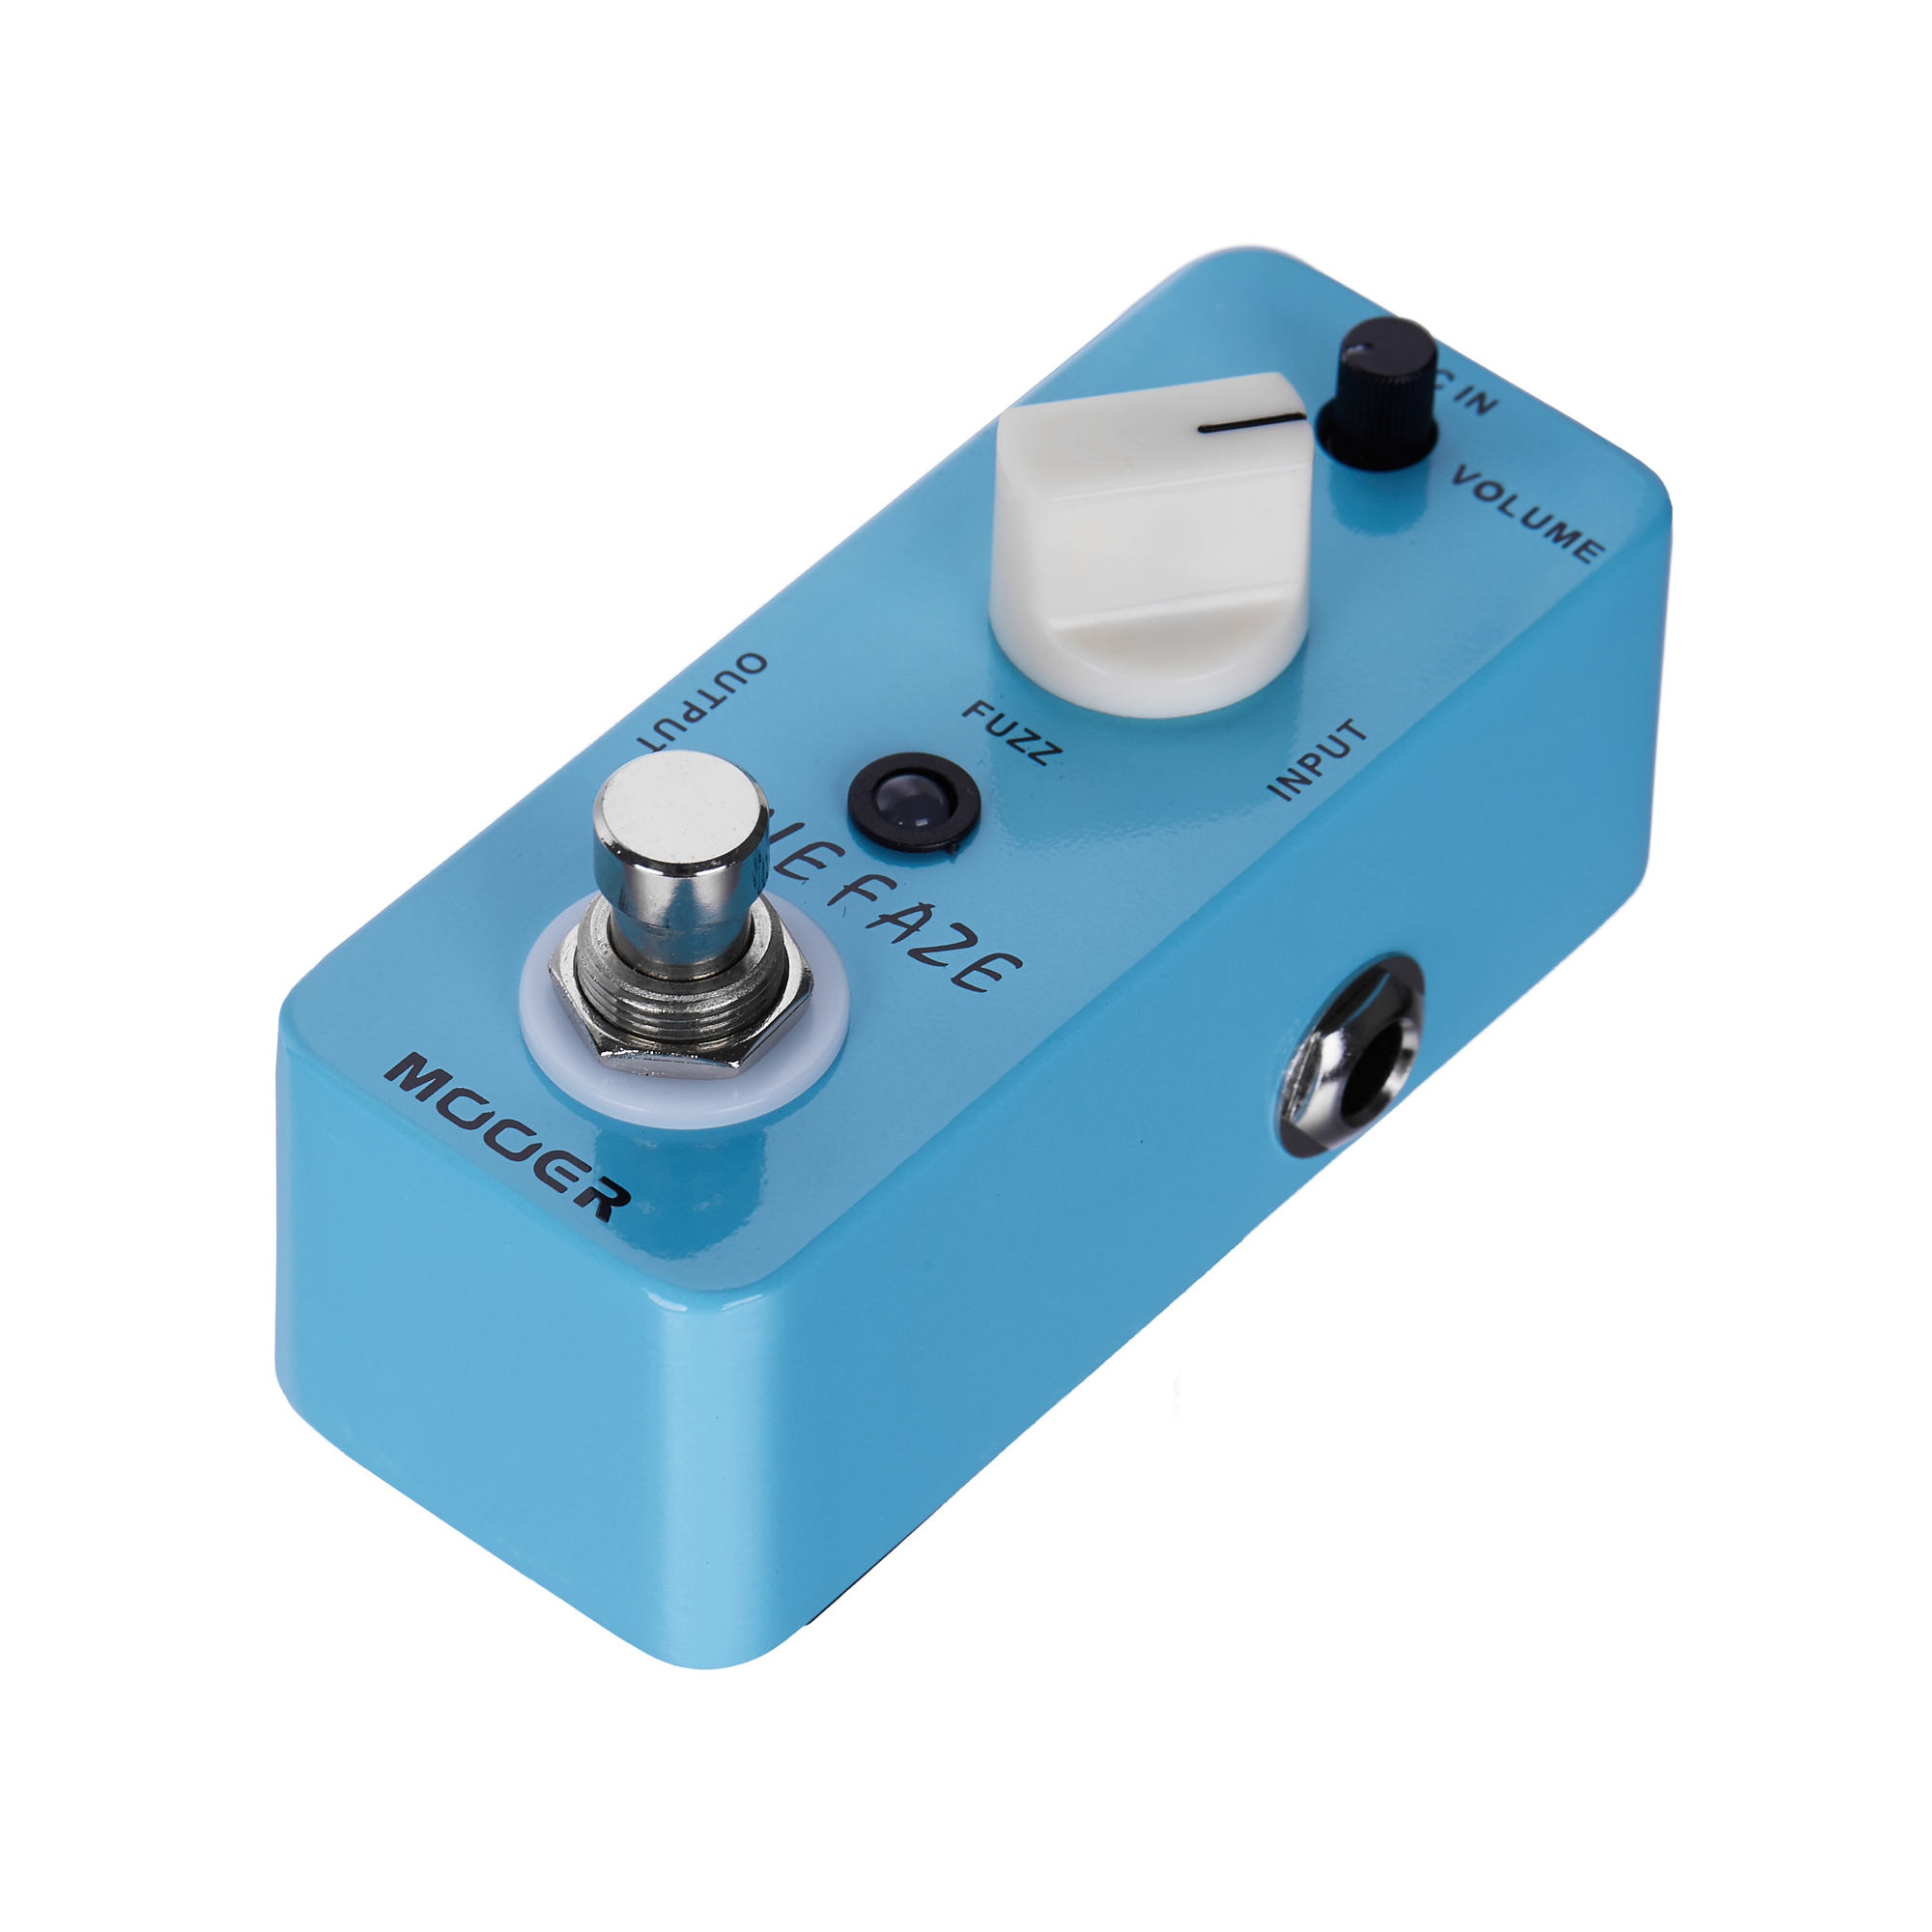 Mooer Blue Faze Fuzz Pedal Electric Guitar Effect Pedal True Bypass MFZ1 mooer blue faze fuzz effect pedal mini electric guitar effects true bypass with free connector and footswitch topper